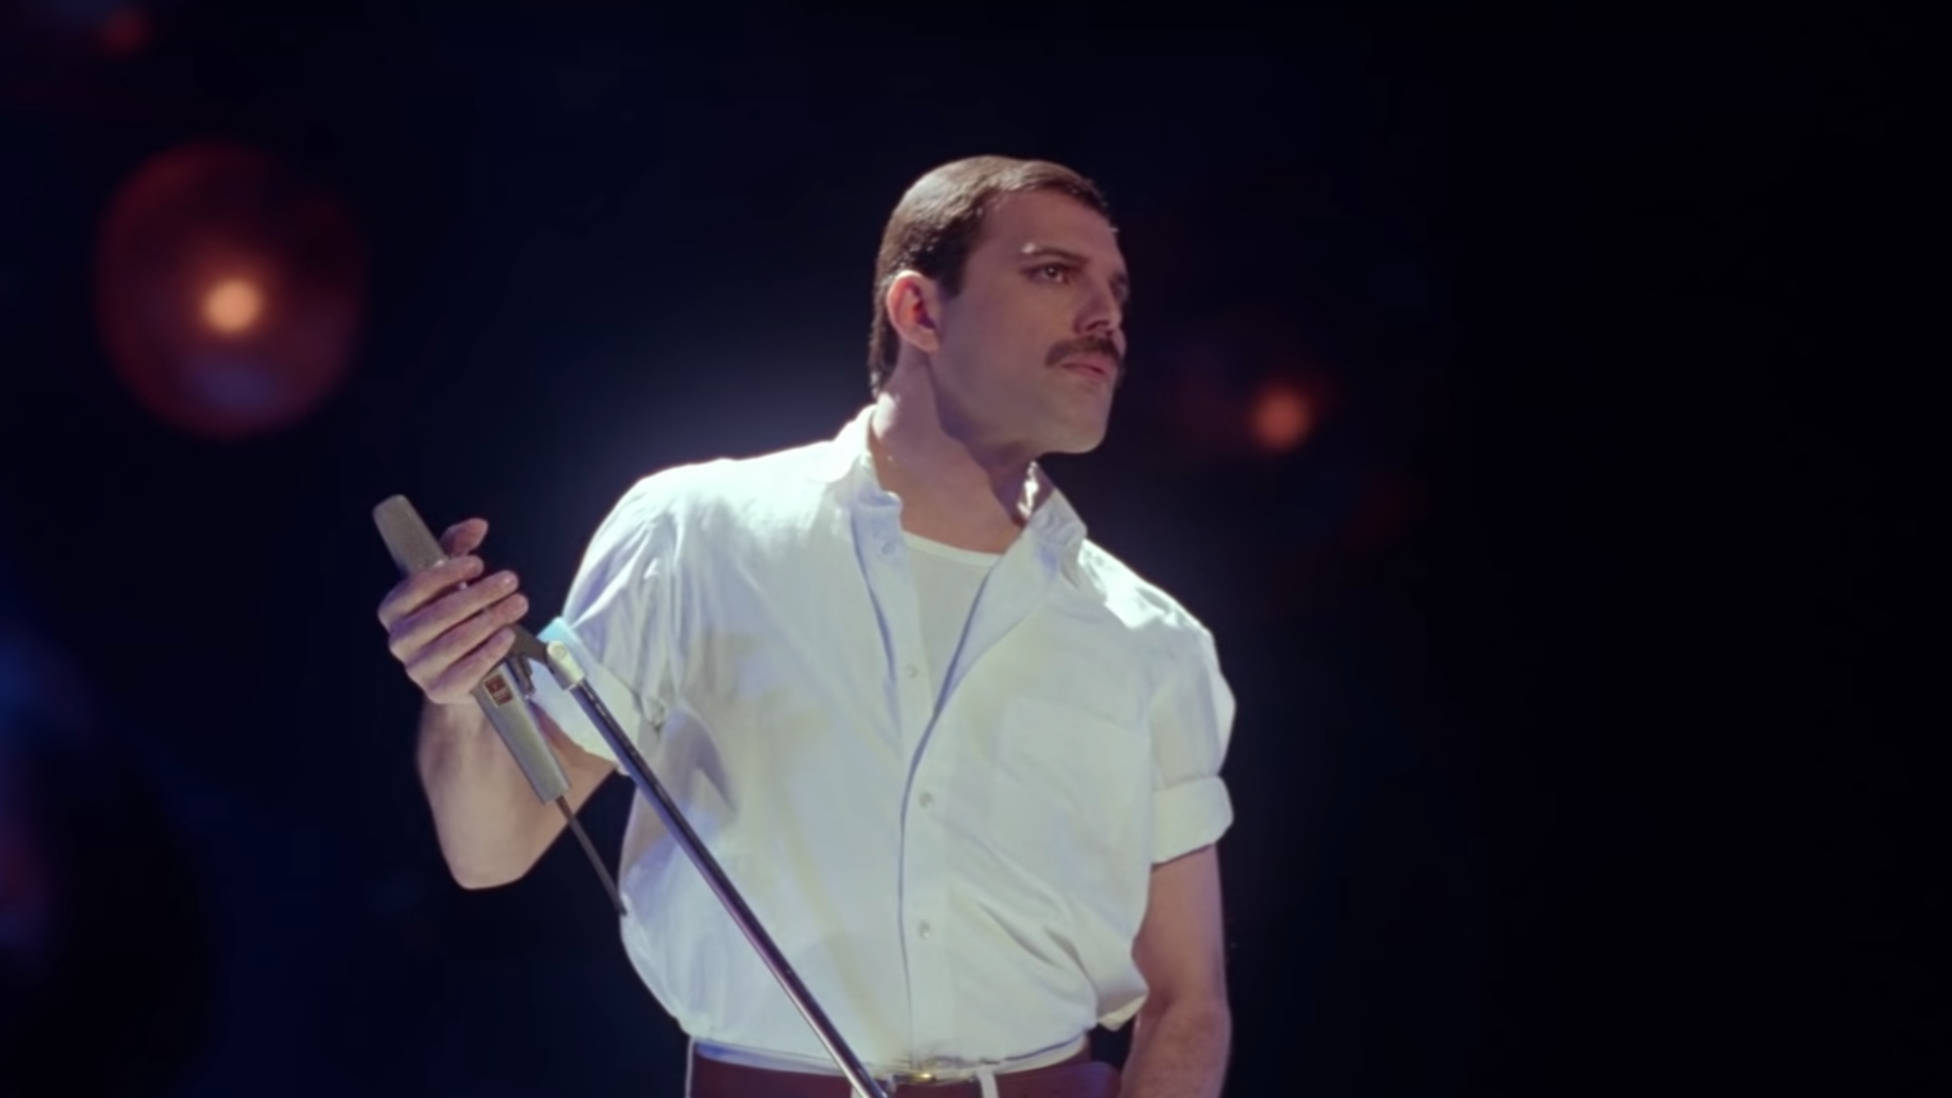 Watch Queen's Freddie Mercury in previously unreleased Time Waits For No One performance